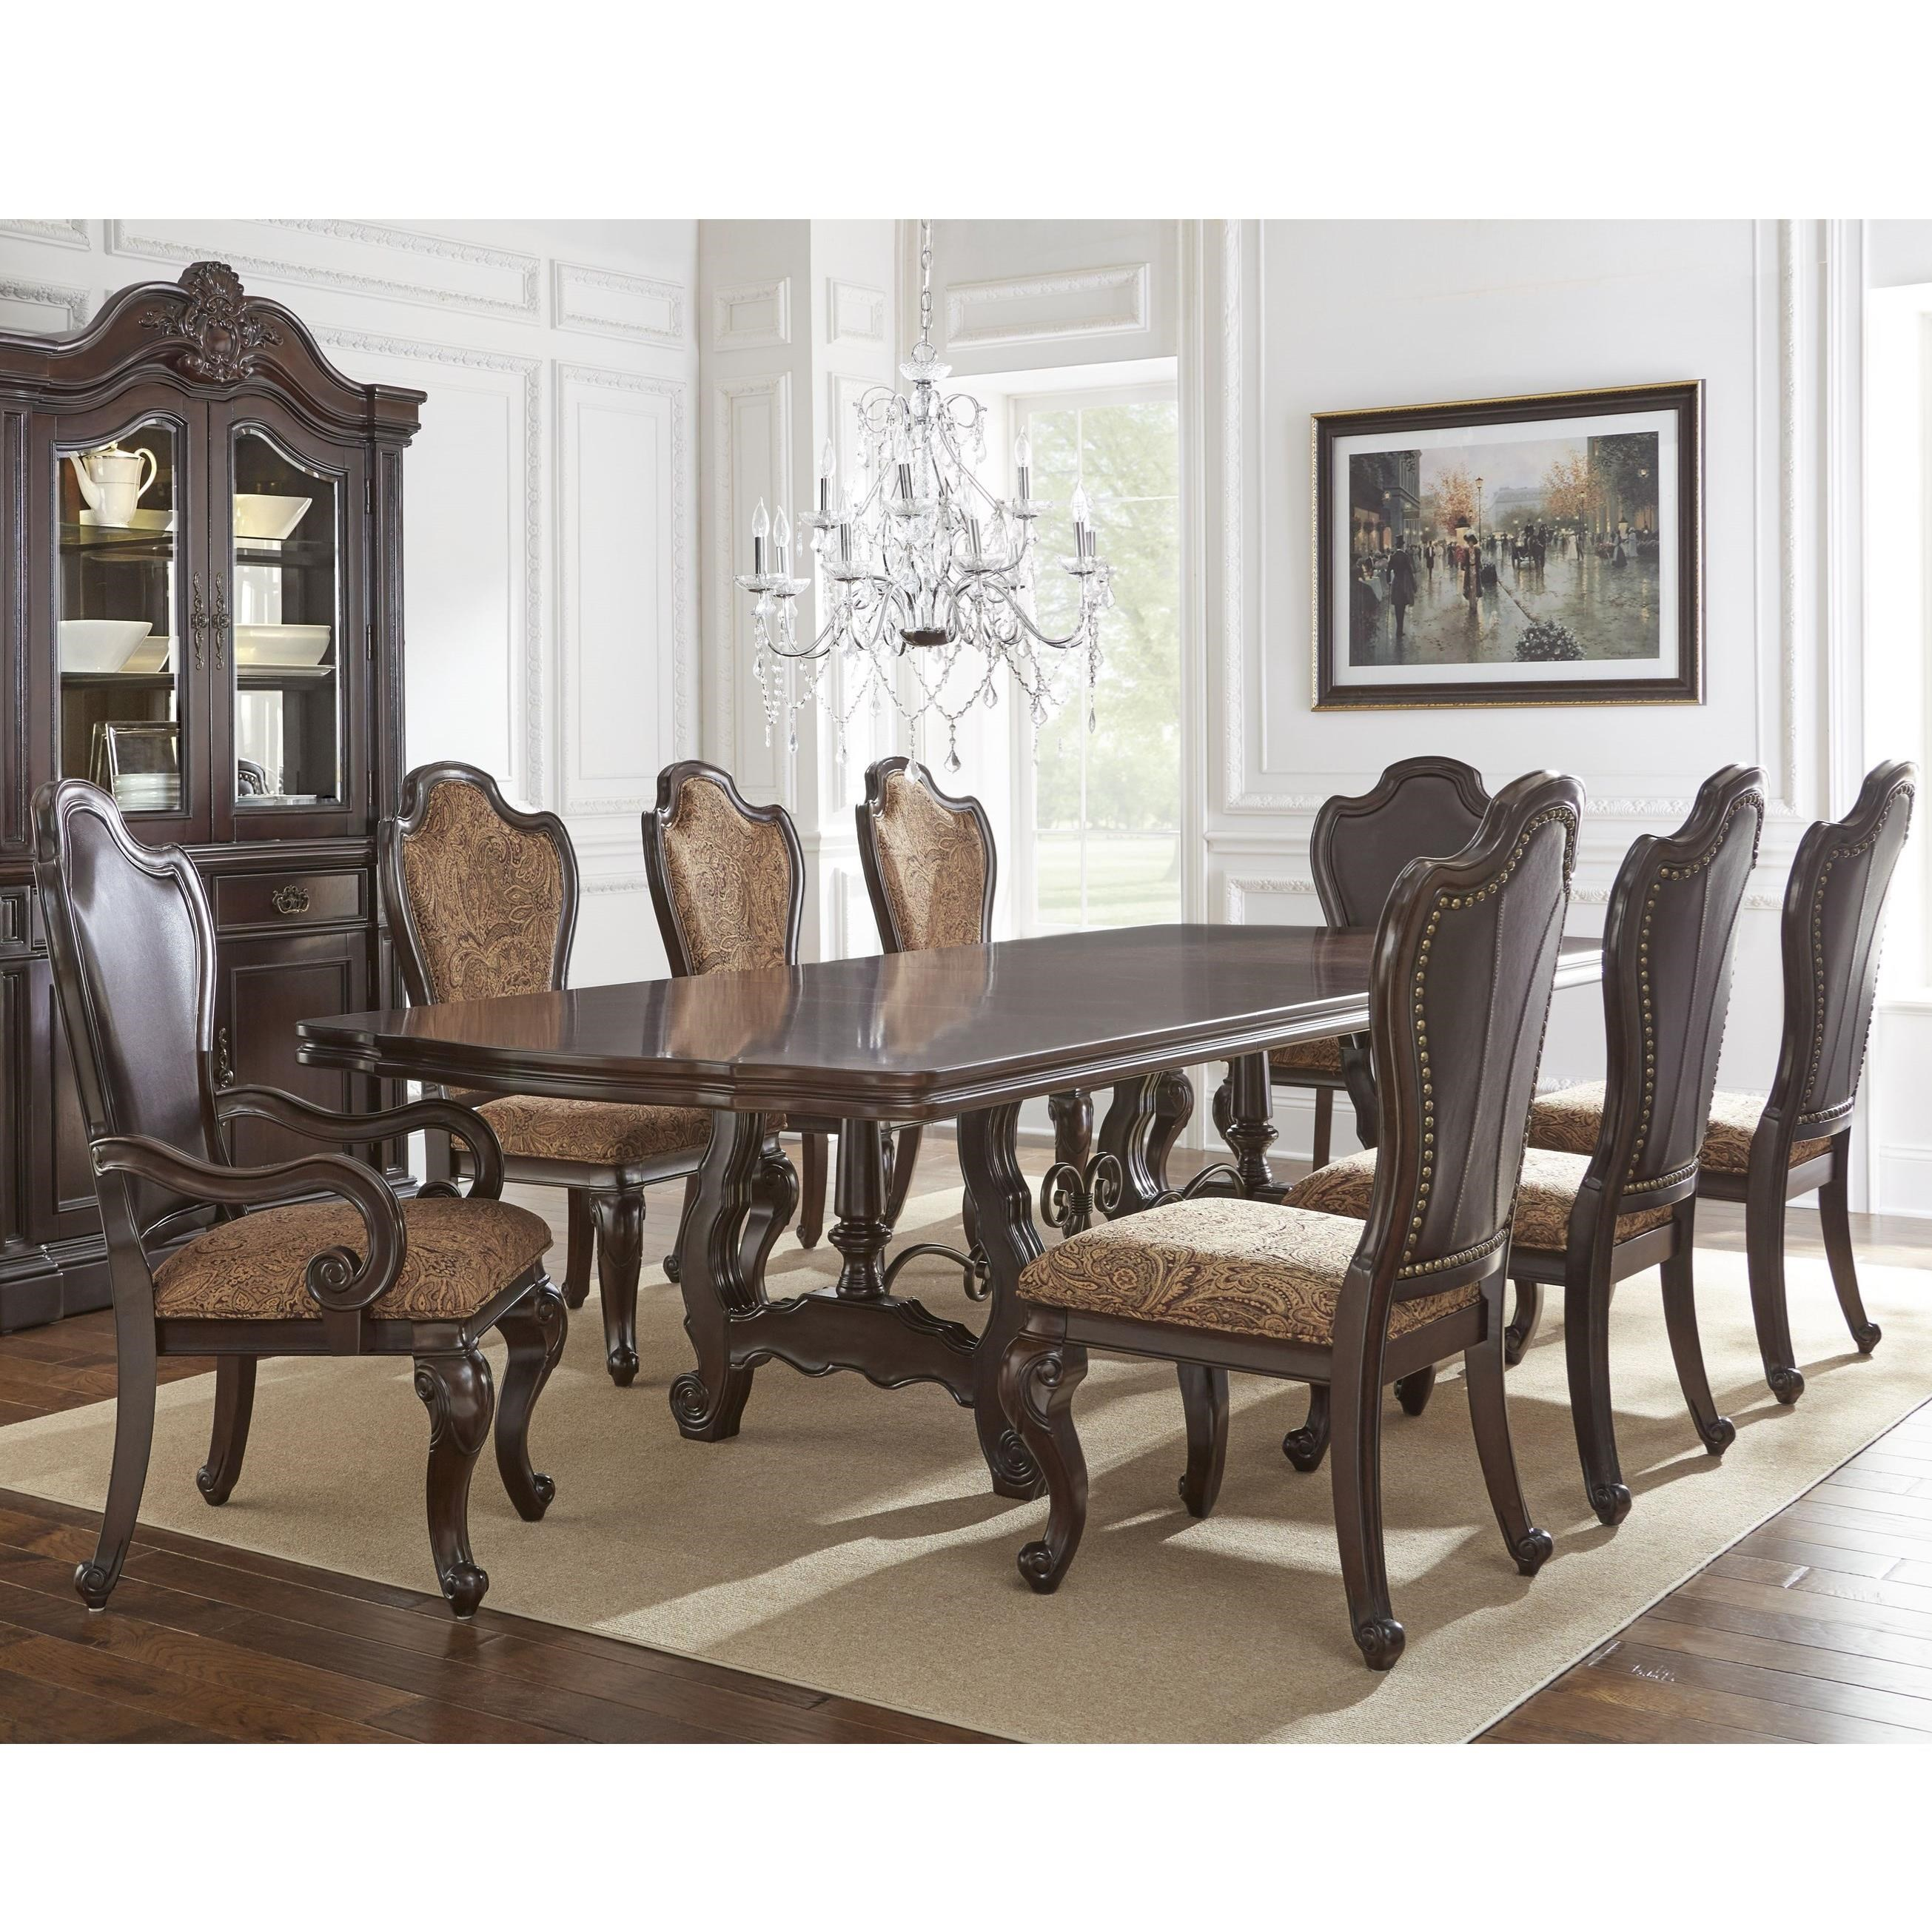 Steve Silver Angelina 9 Piece Dining Set - Item Number: AG486TB+T+2x680A+6x680S